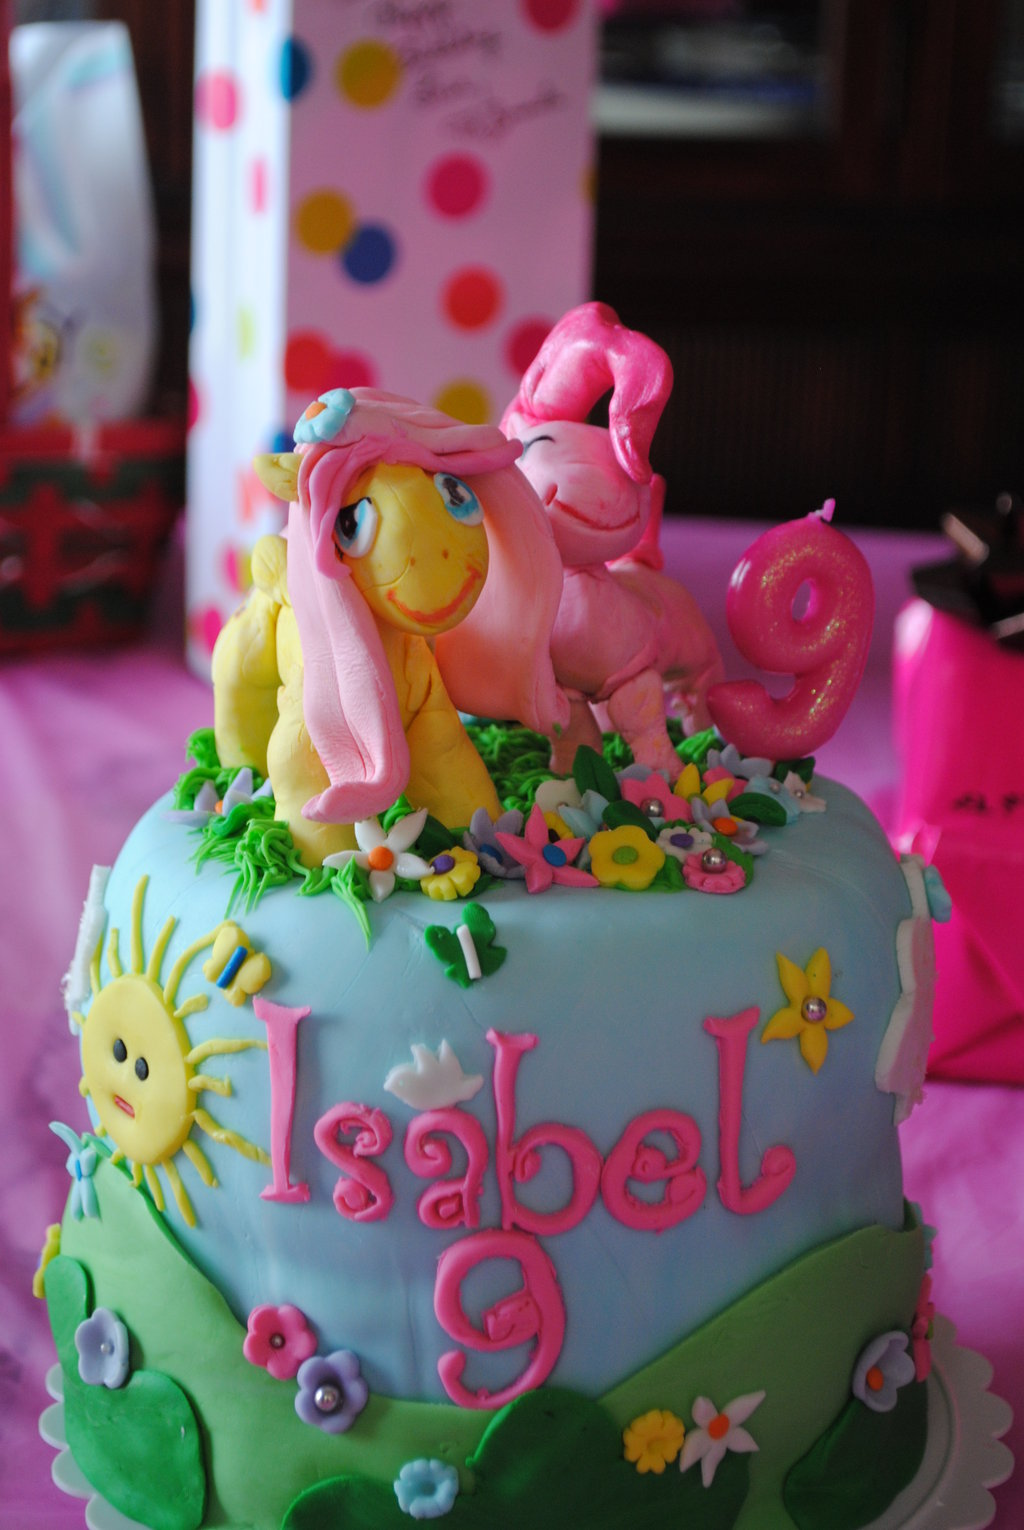 My Little Pony Friendship Is Magic Birthday Cake